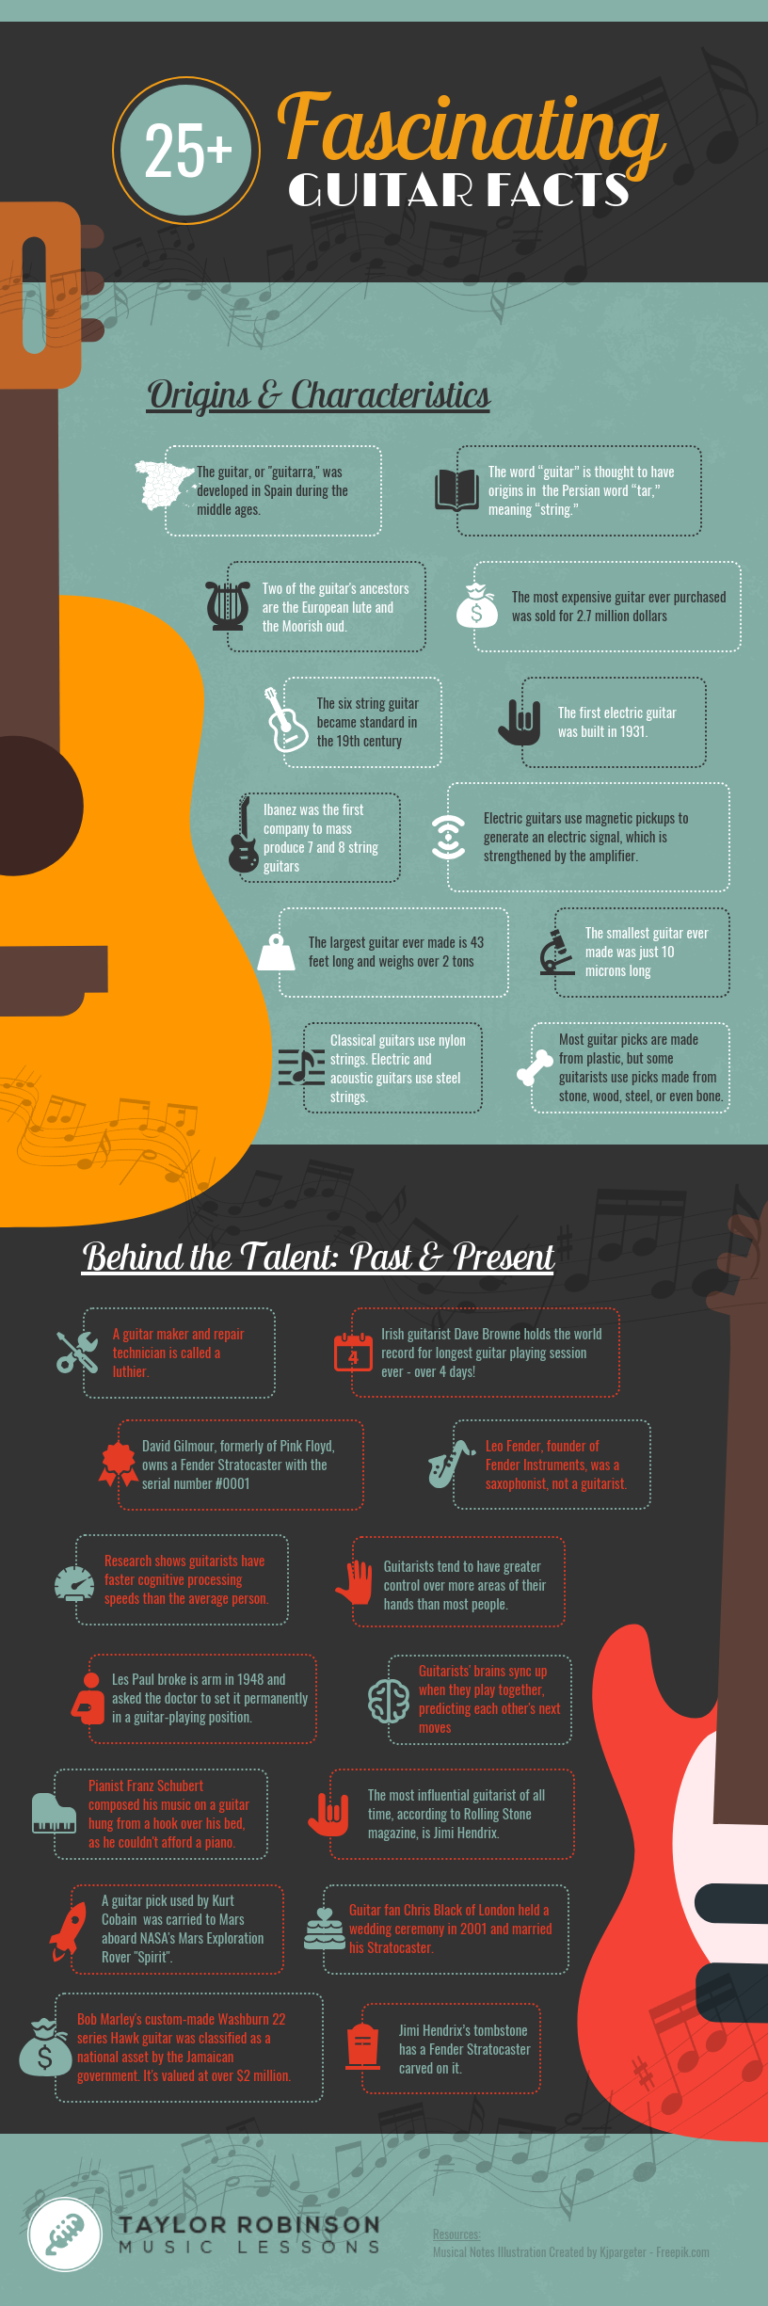 Guitar Facts Infographic Guitar Guitarfacts Trivia Infographic Music Blog Infographic Educational Infographic